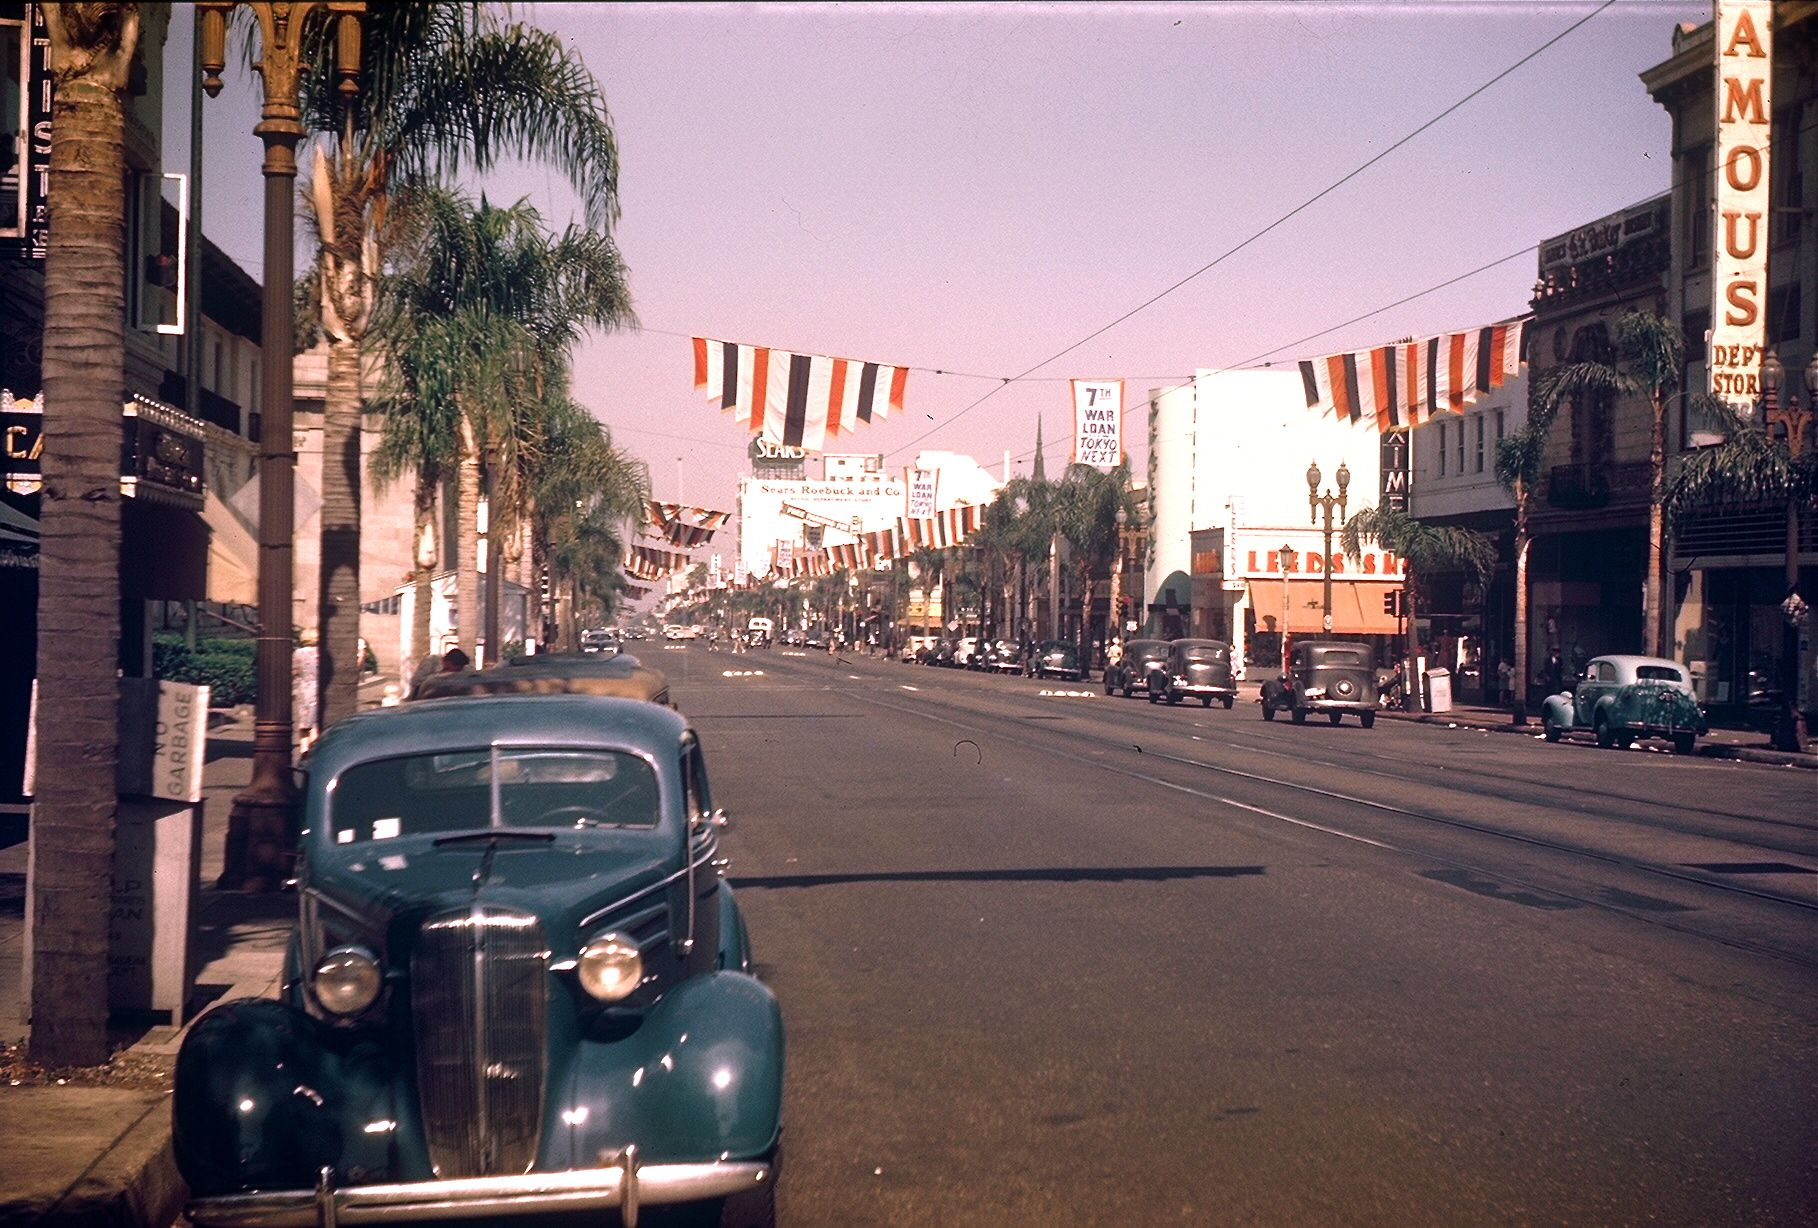 Color car los angeles - Travel My Father S Color Images Of Southern California In The 1940 S